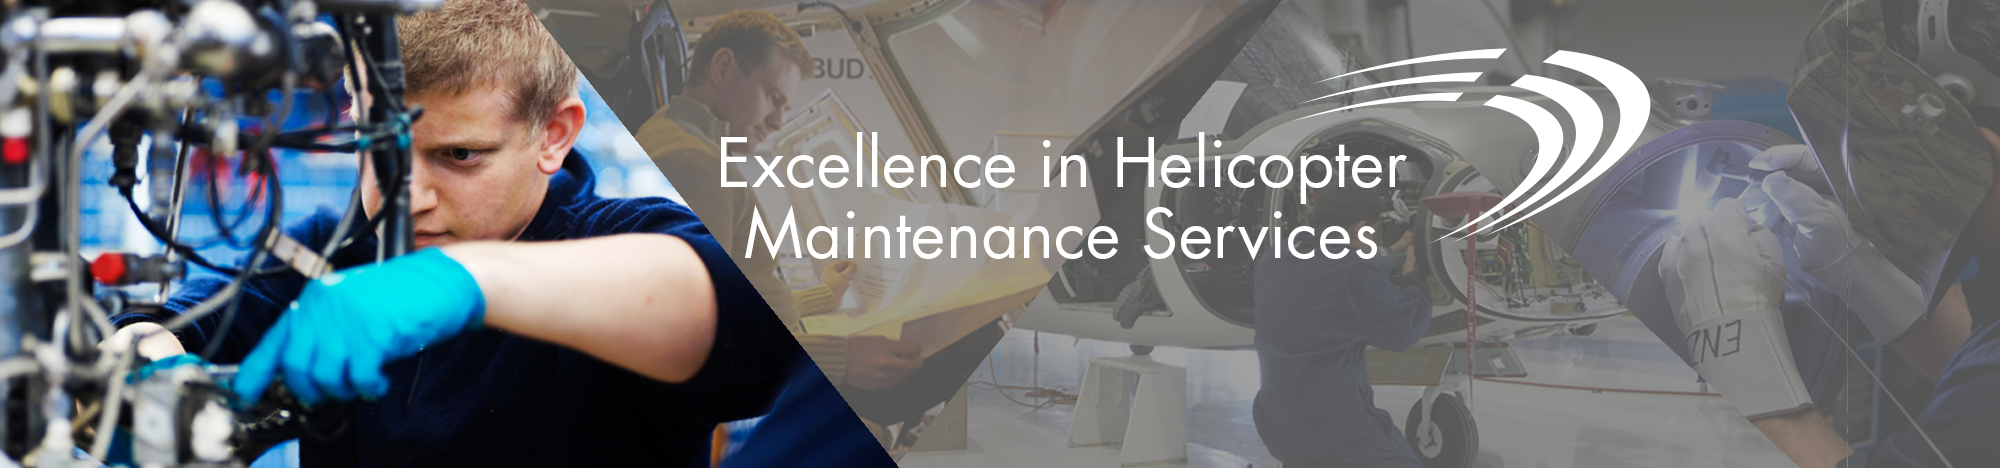 Heli-One Helicopter Maintenance Repair Overhaul